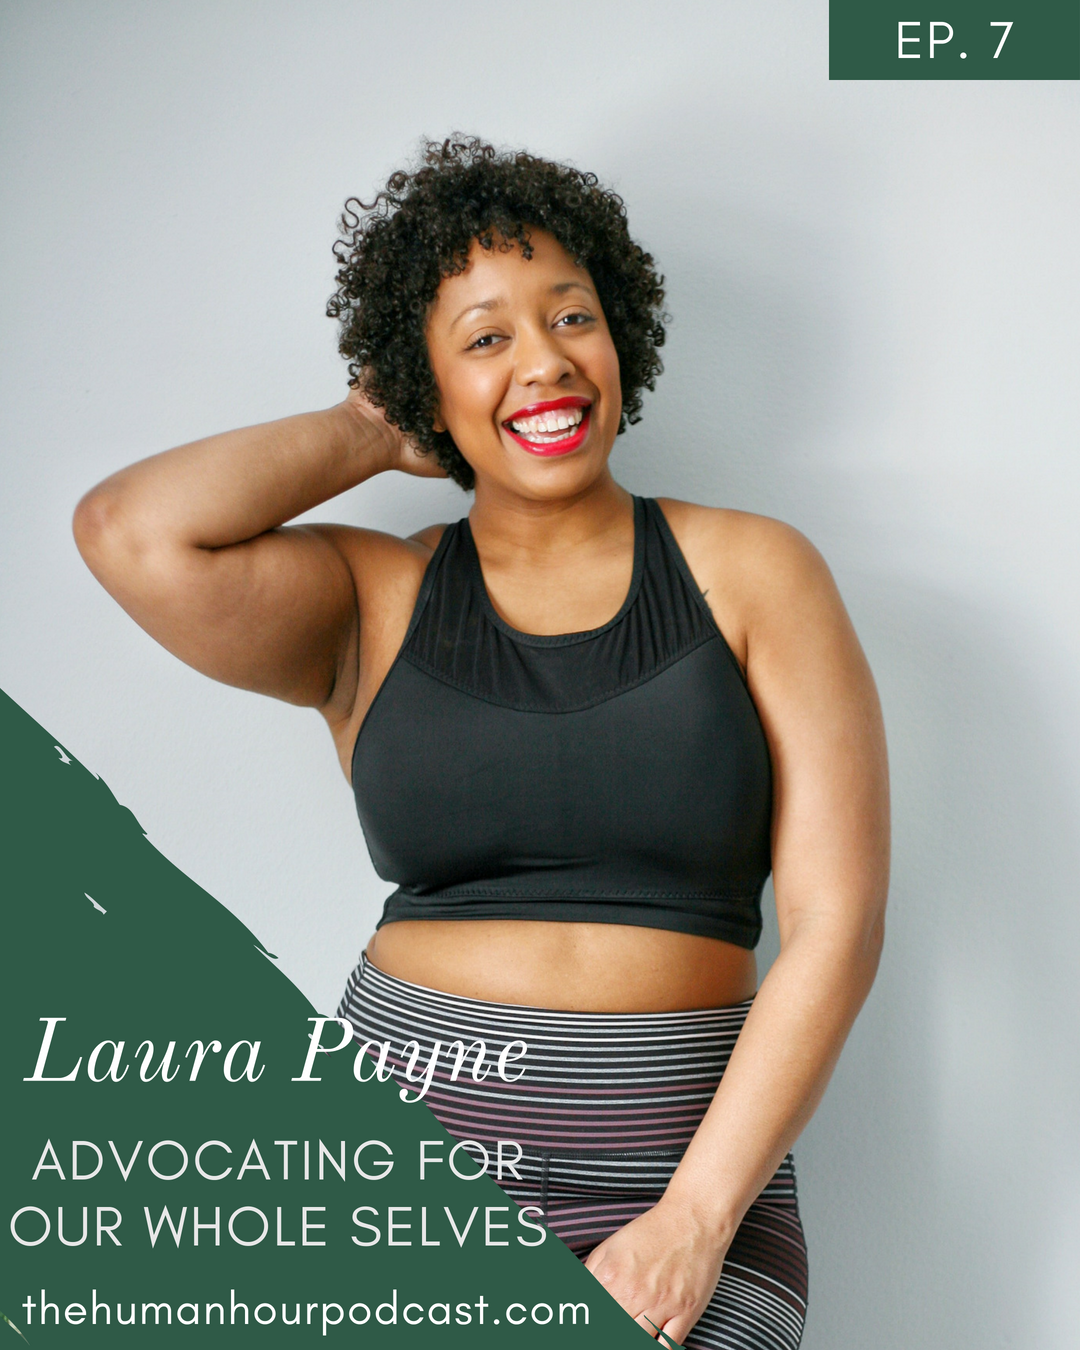 S1 E7: Advocating For Our Whole Selves with Laura Payne